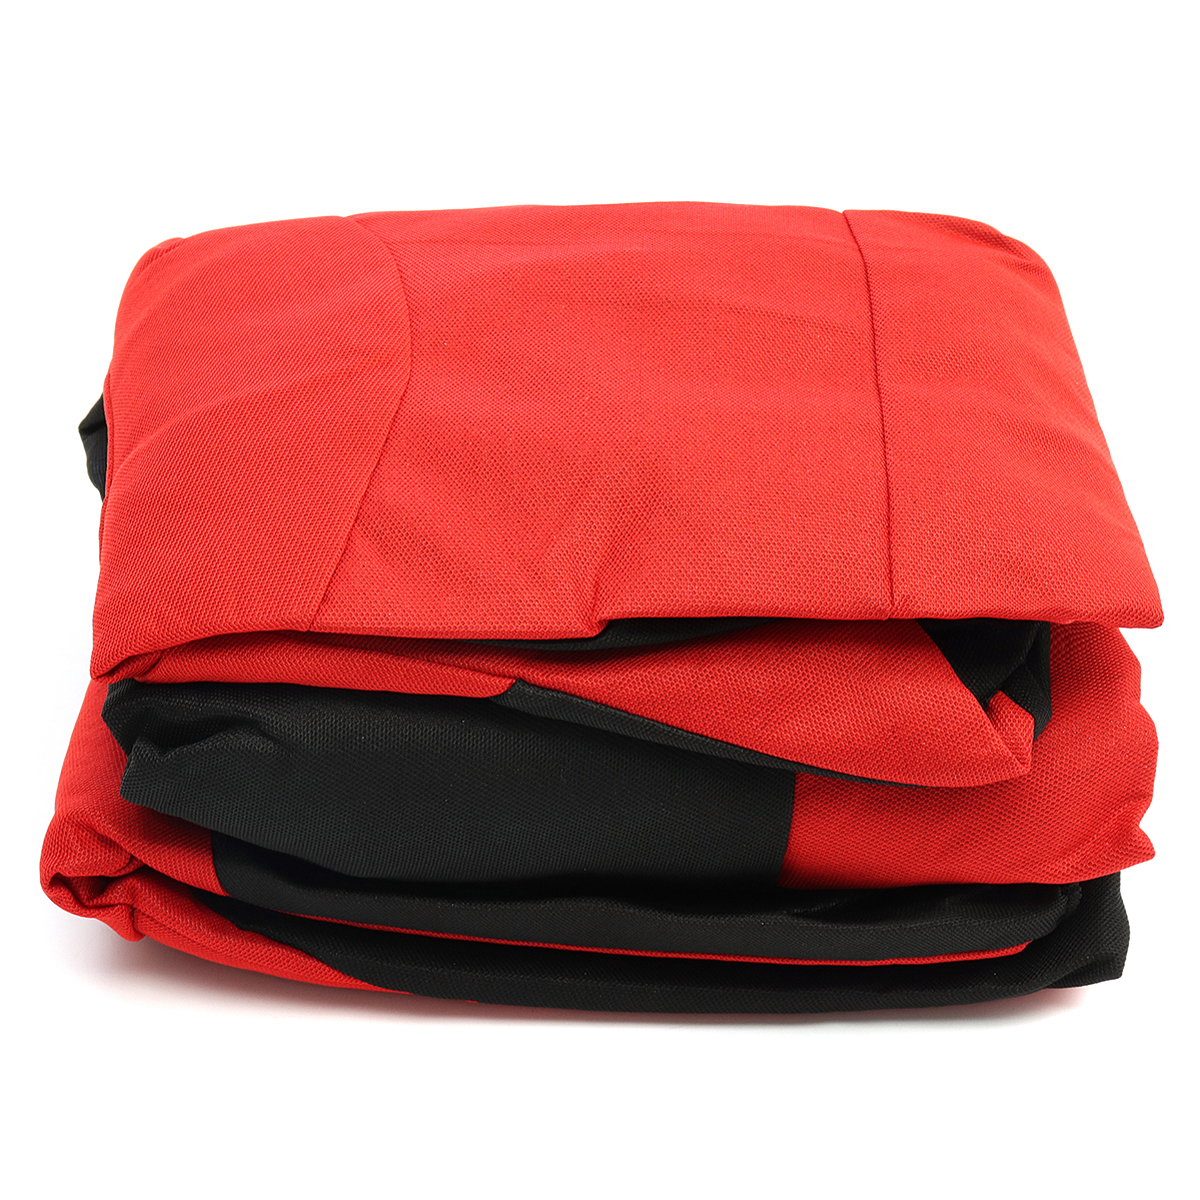 8Pcs Polyester Fabric Car Full Seat Cover Cushion Protector Set Front Rear 4 Heads Universal